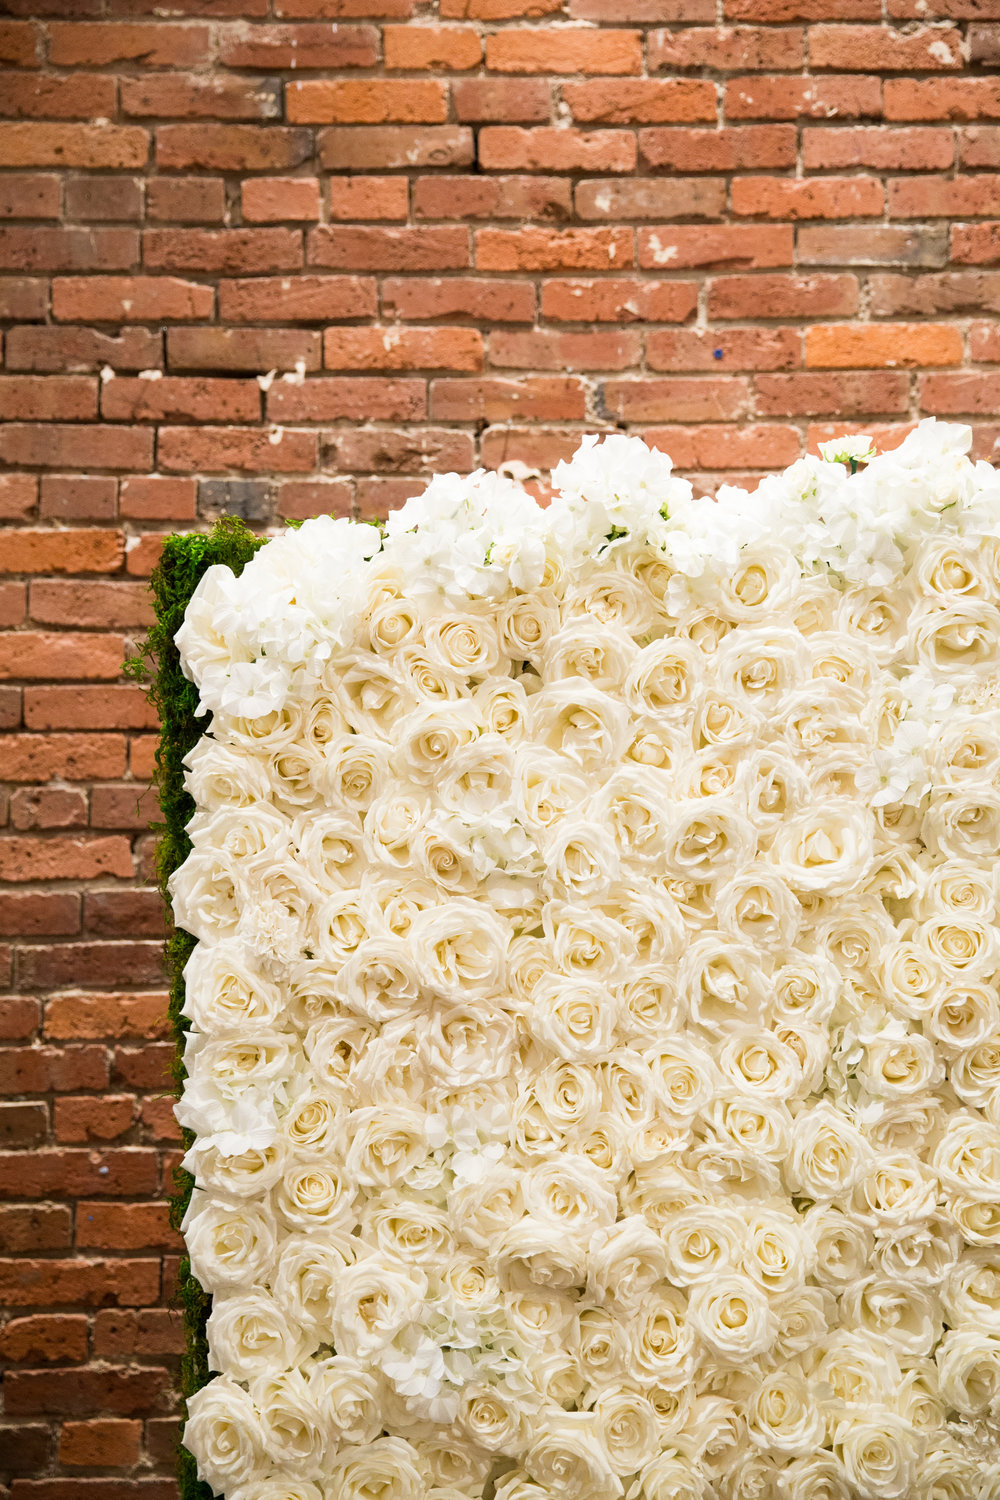 White rose floral wall ceremony backdrop at Axis Pioneer Square wedding